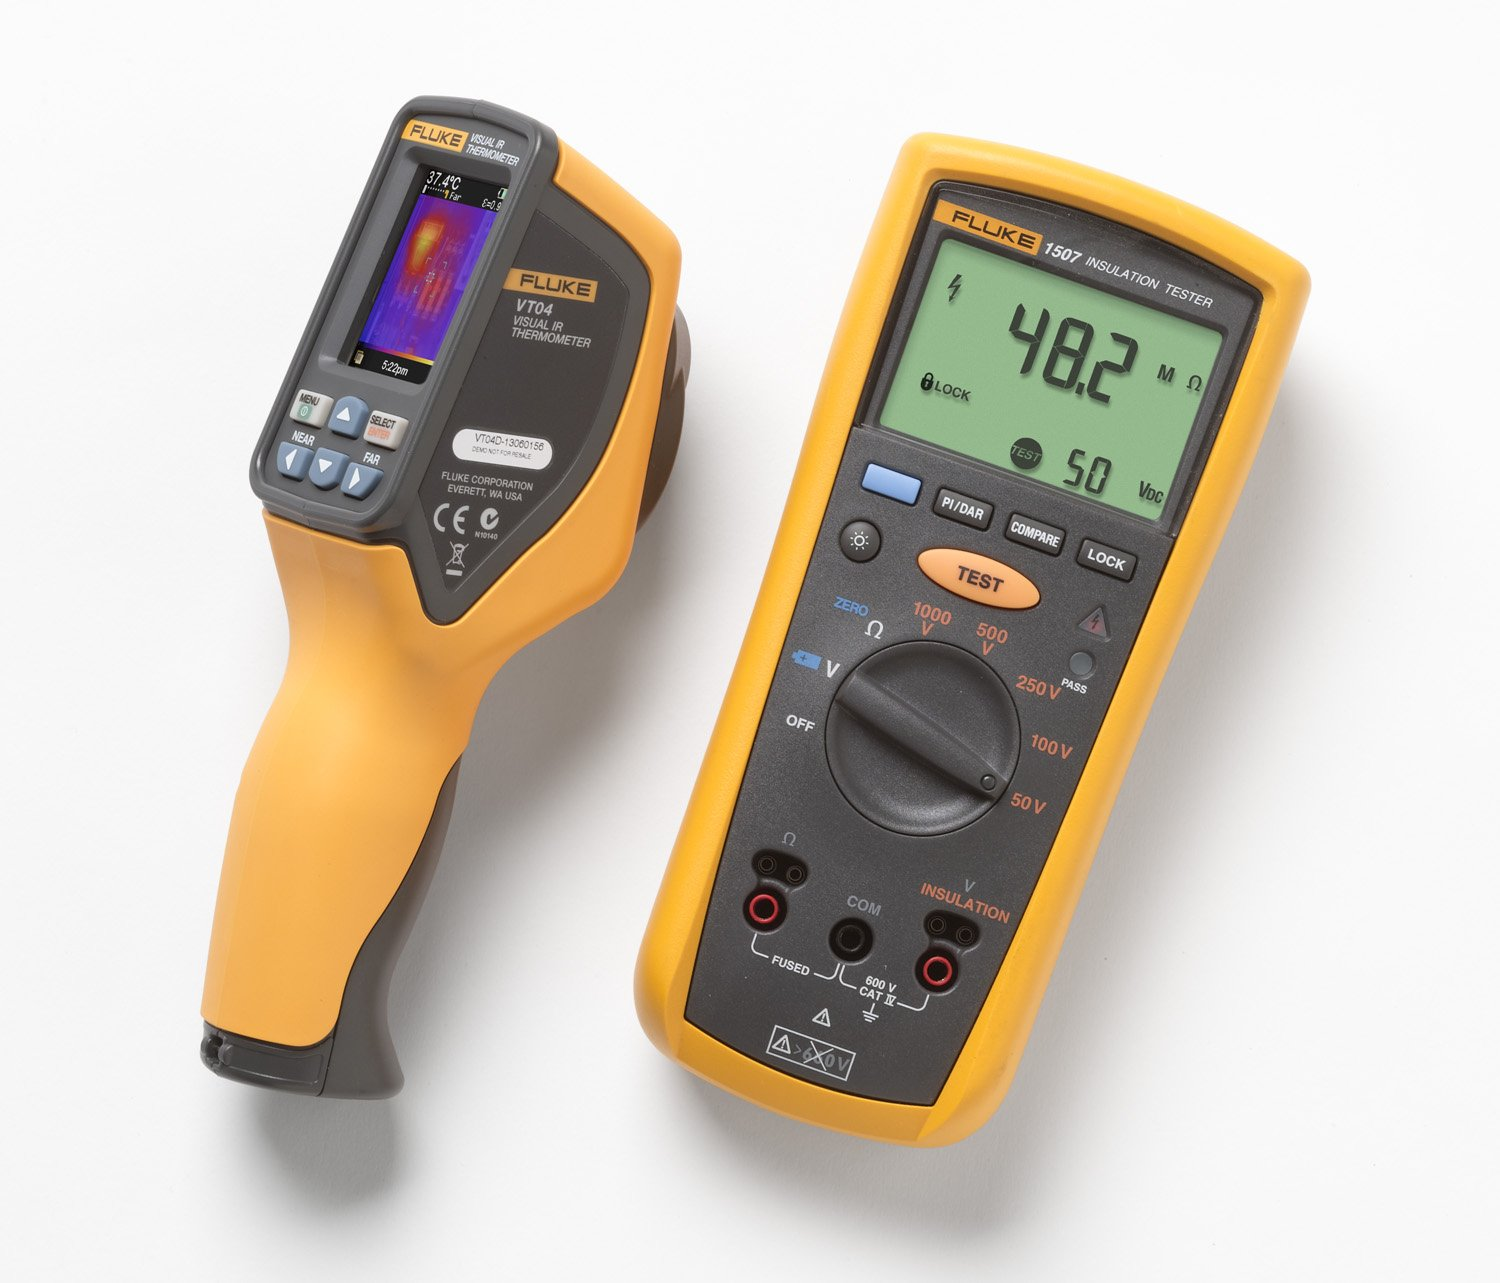 Fluke FLK-VT04-MAINT-KIT Preventive Maintenance Kit for Visual Infrared Thermometer